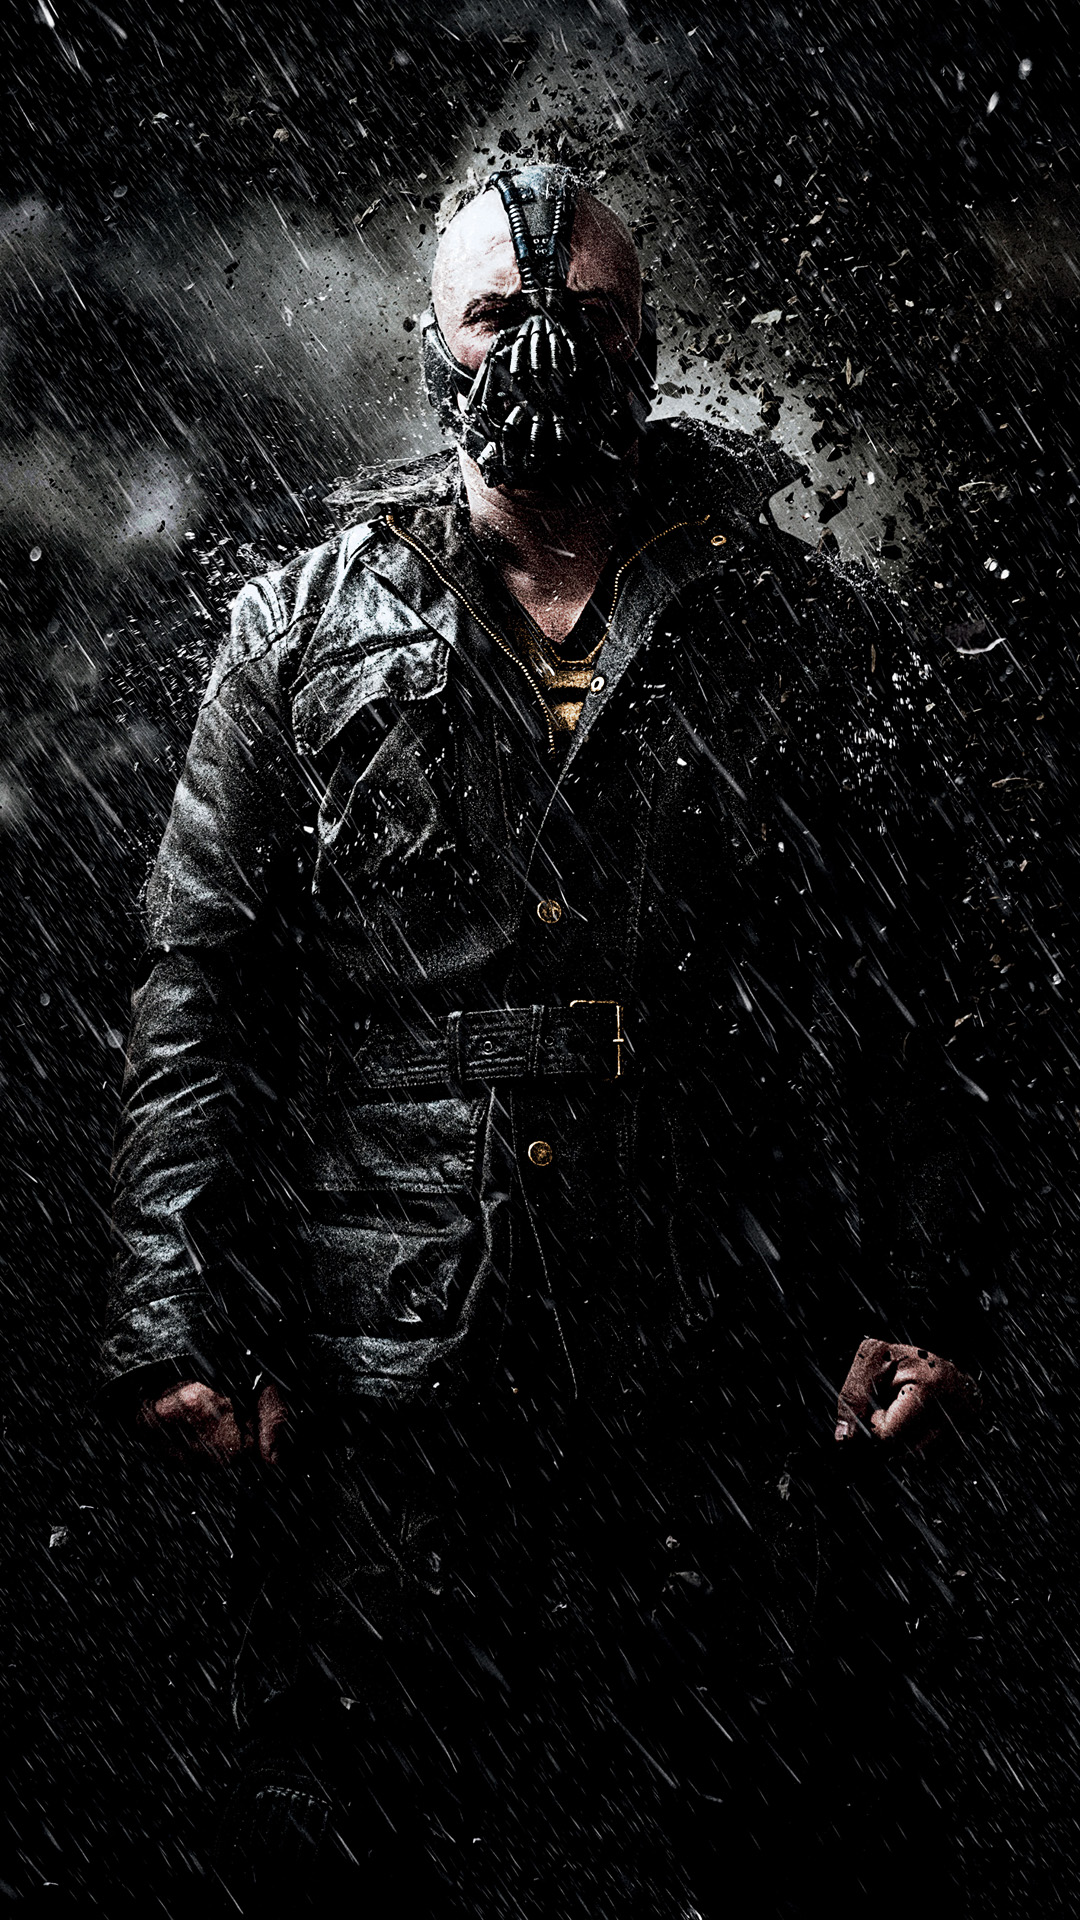 What Happened To Bane In The Dark Knight Rises